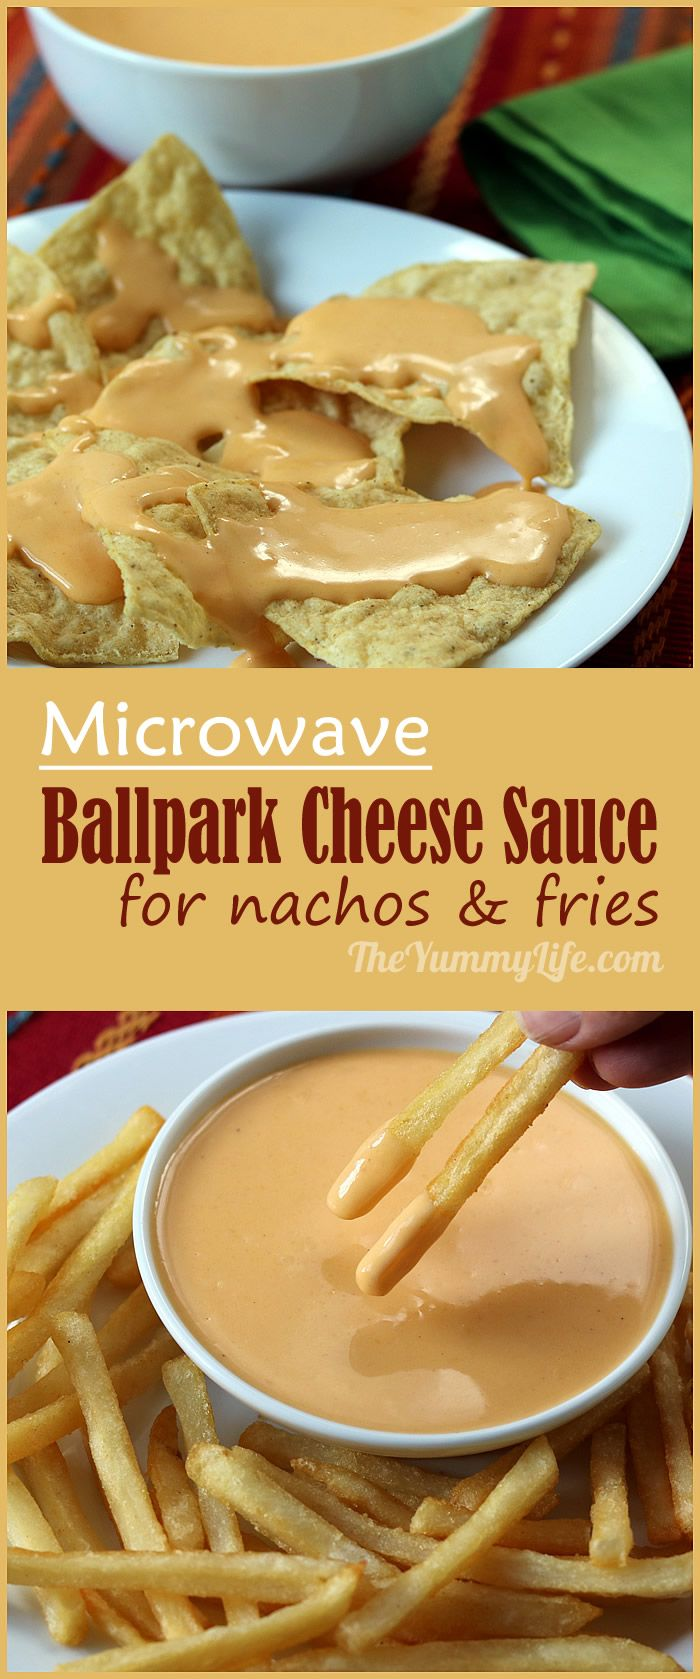 Cheddar Cheese Sauce Microwave